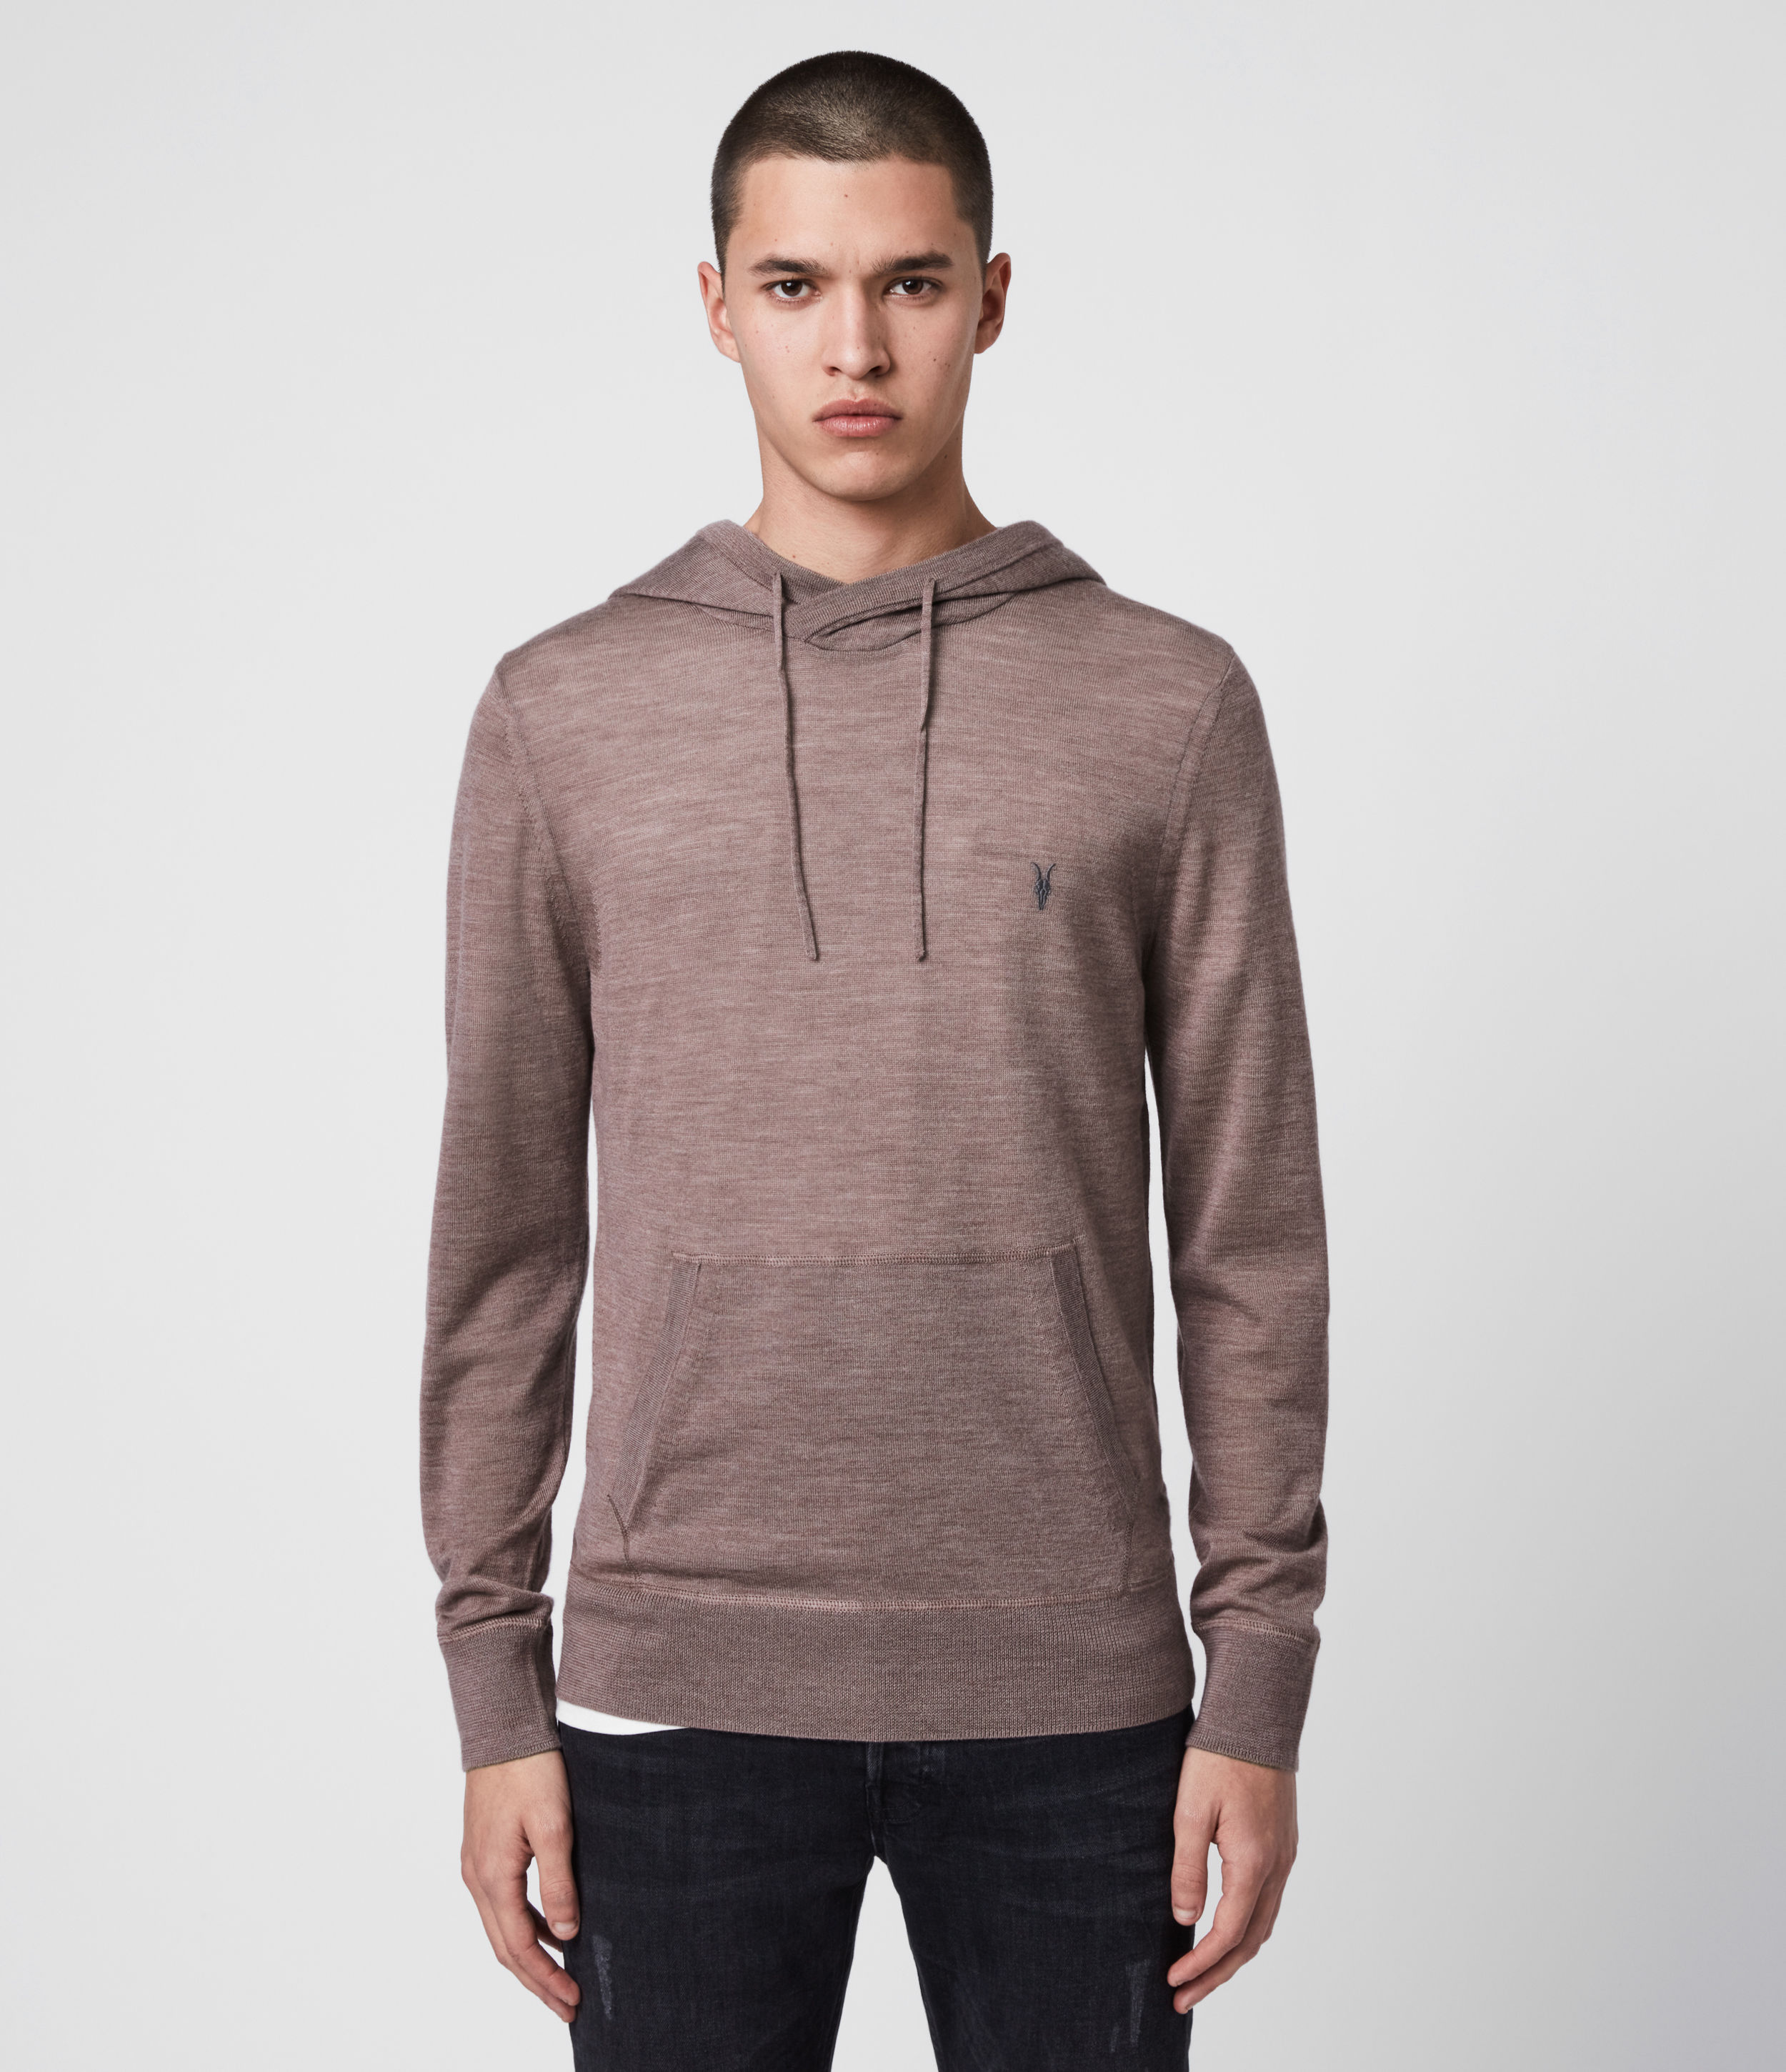 AllSaints Mens Mode Merino Hoodie, Heather Pink Marl, Size: S